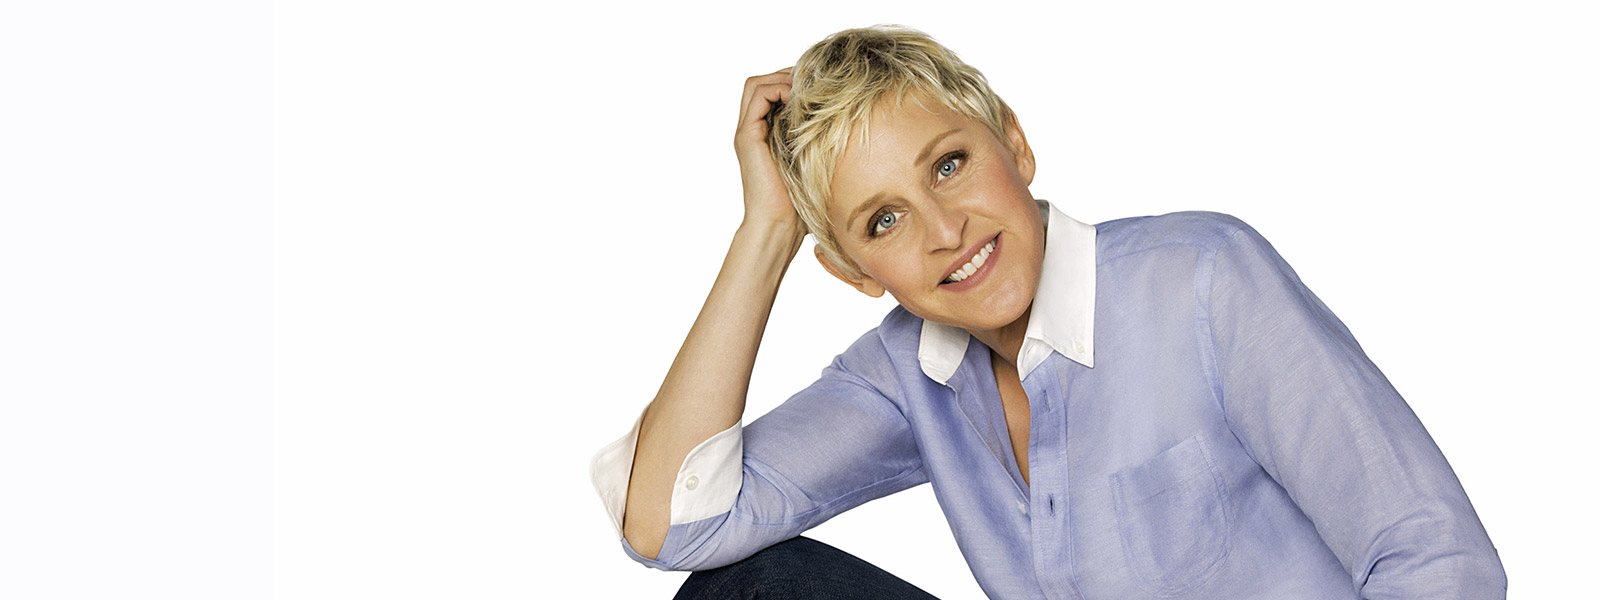 write a letter to ellen degeneres Demographic research shows that africa has got the largest youth population in the realm of over 200 million people, an amount which is expected to double by 2045.